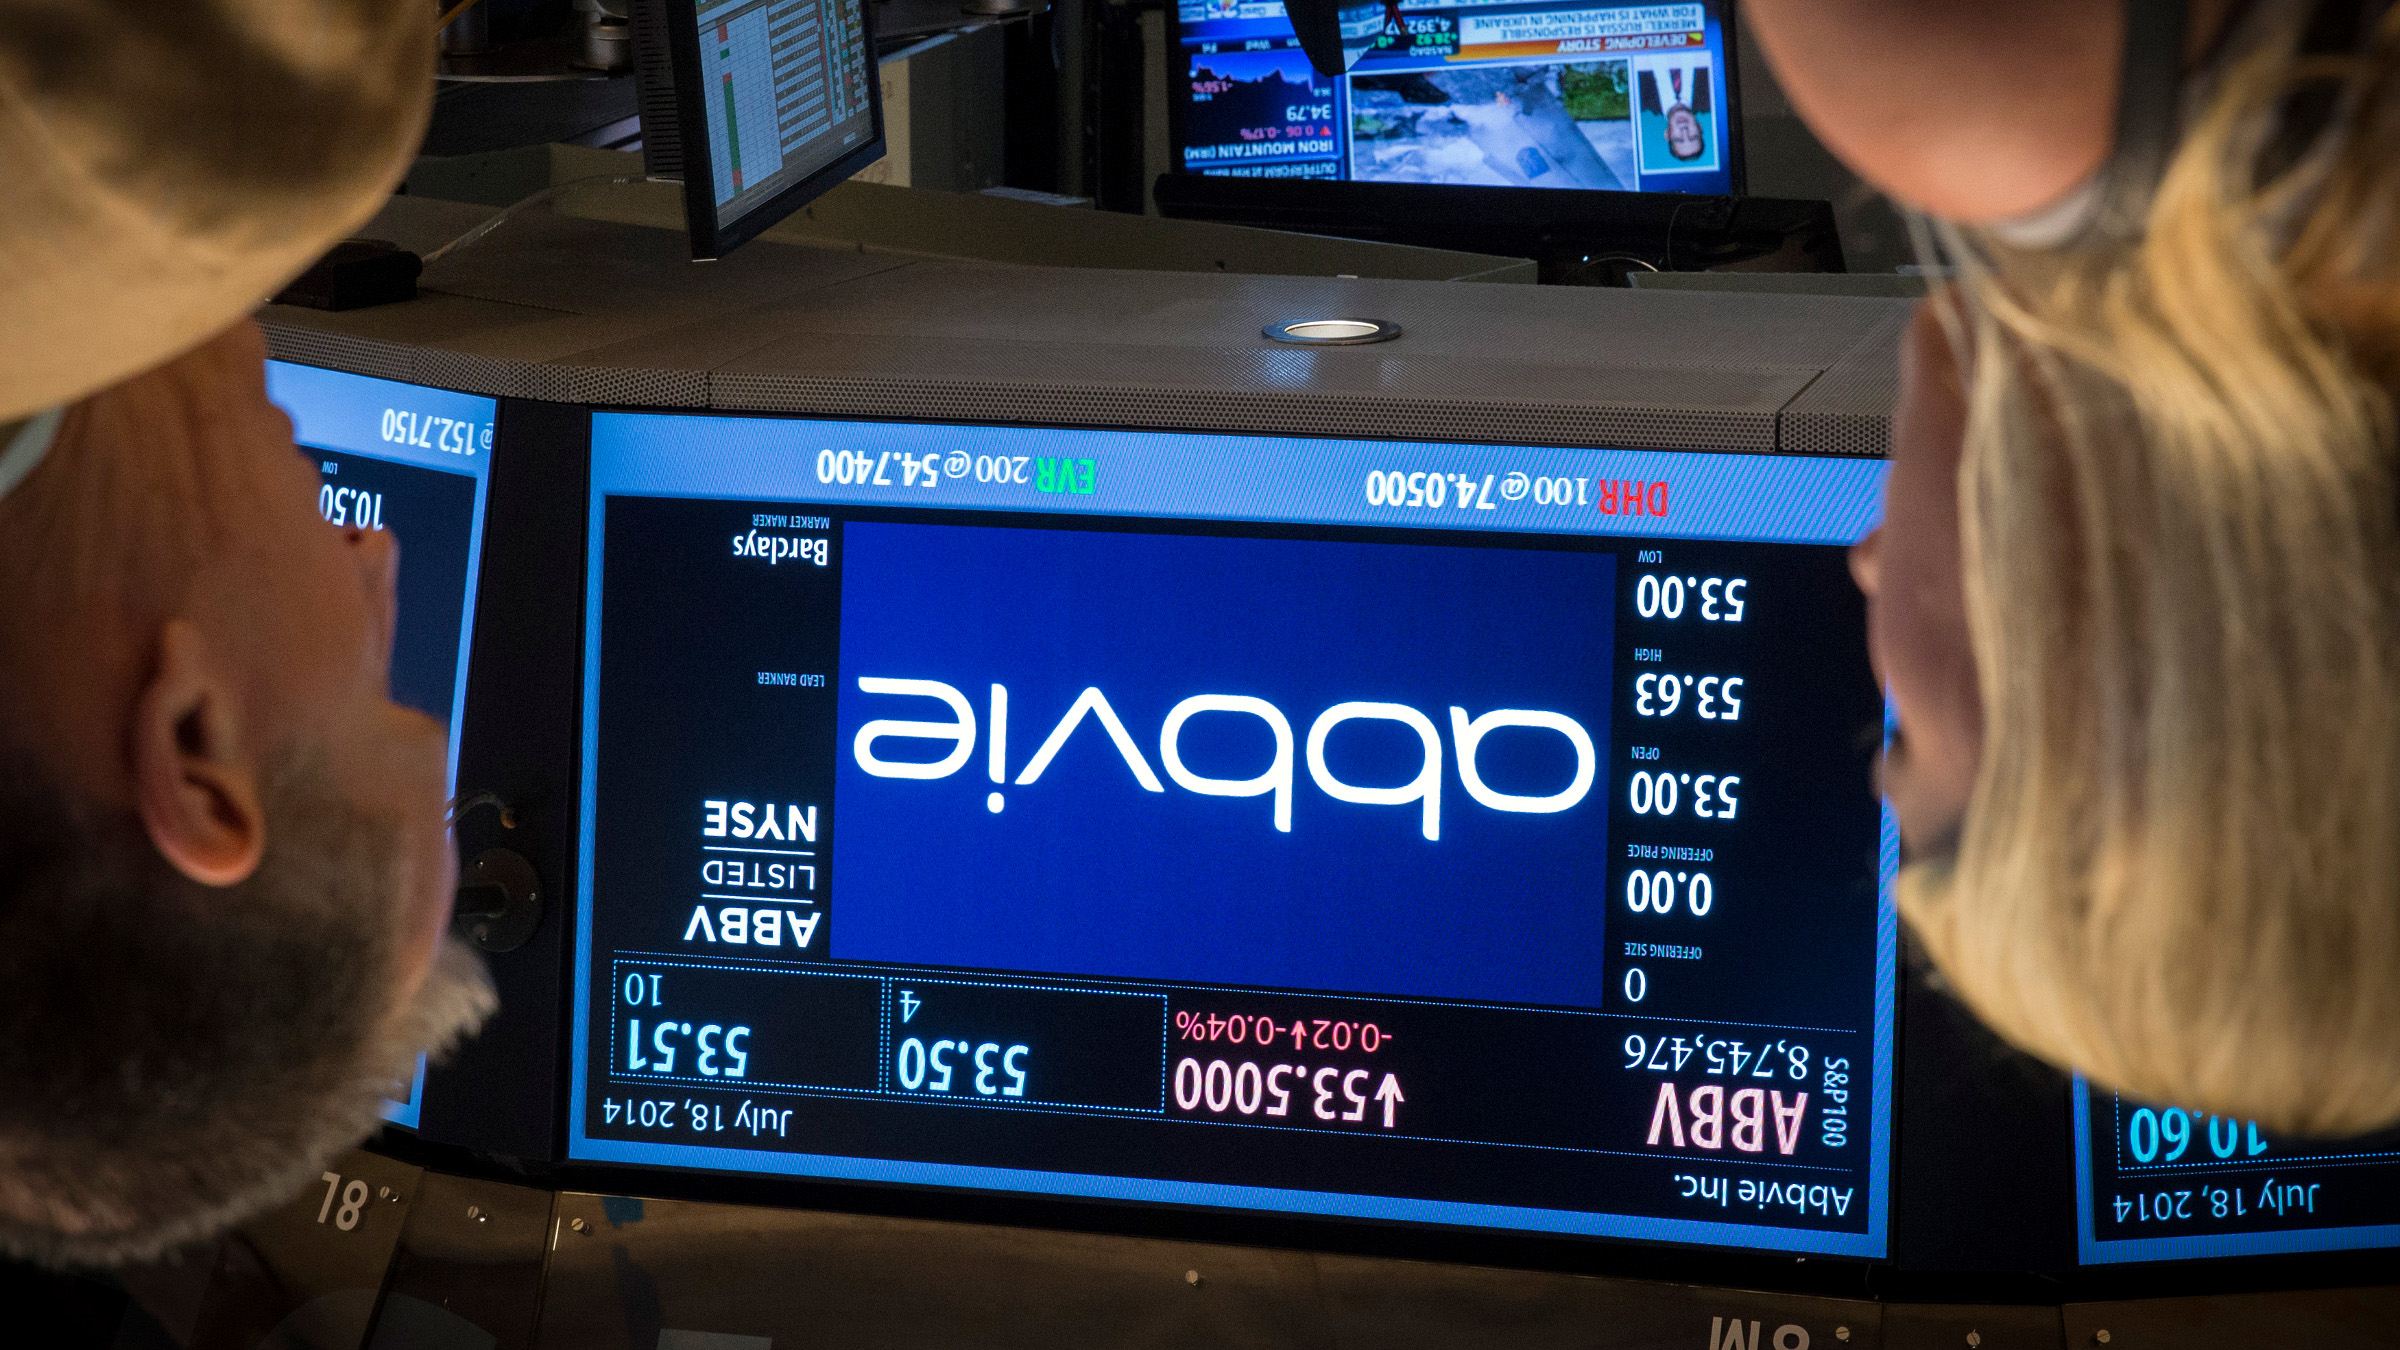 A screen displays the share price for pharmaceutical maker AbbVie on the floor of the New York Stock Exchange July 18, 2014. Shire said on July 18 that it had accepted an offer of 32 billion pounds ($54.7 billion) from AbbVie. The U.S. pharmaceutical company will pay 24.44 pounds in cash and 0.8960 of a new AbbVie share for each Shire share.